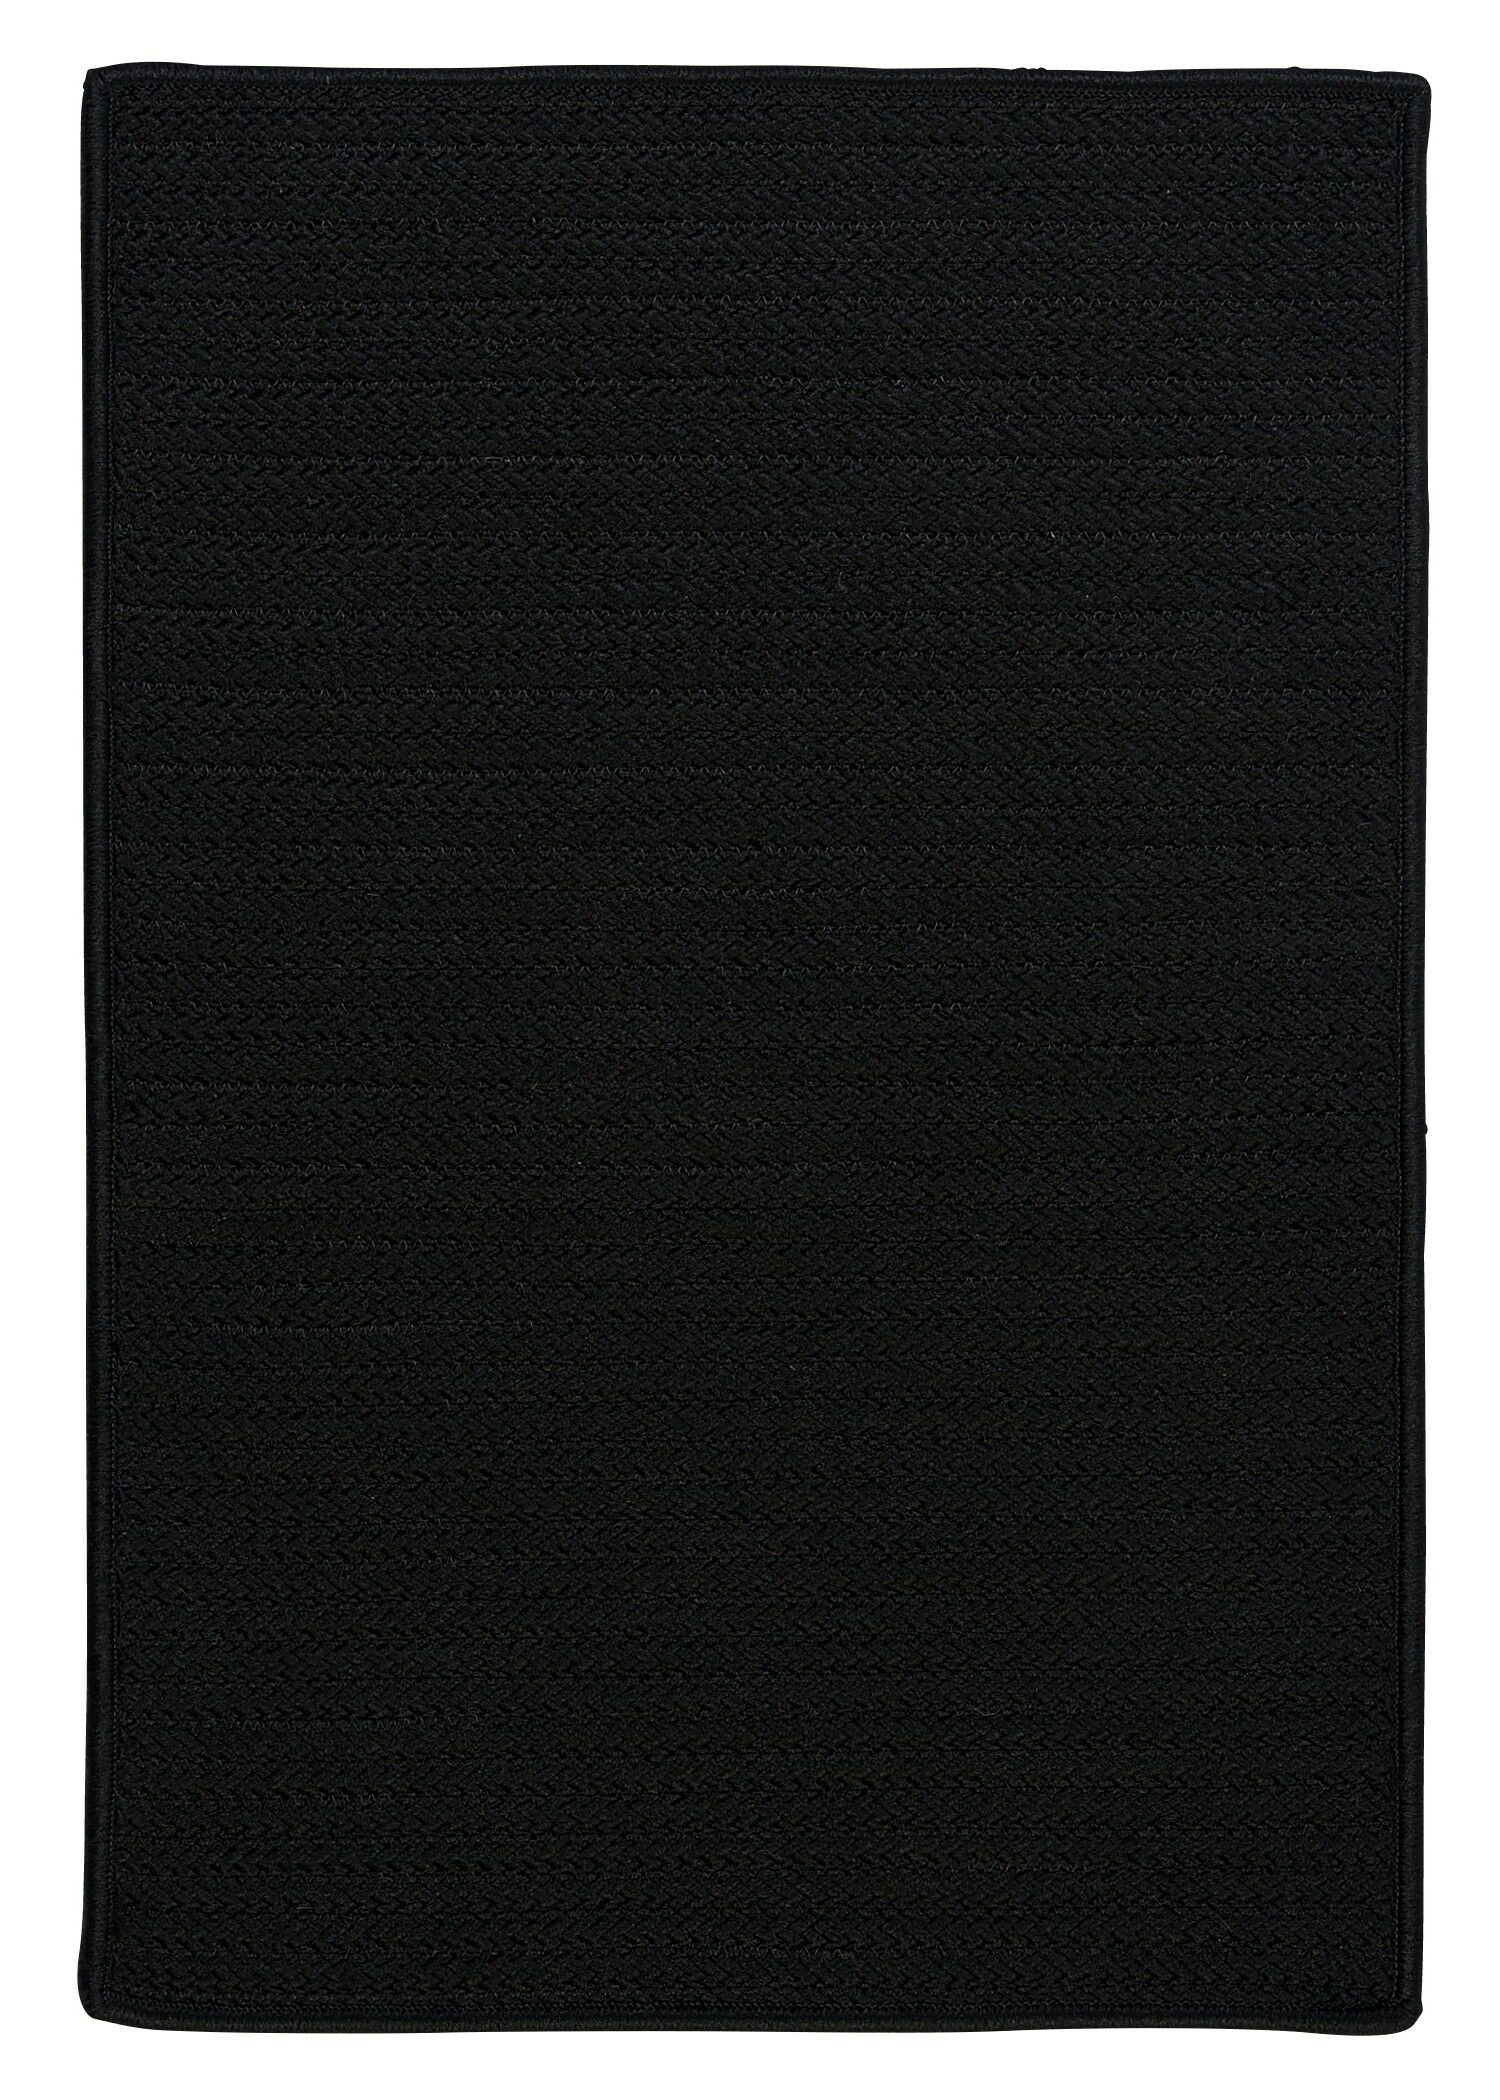 Glasgow Black Indoor/Outdoor Area Rug Rug Size: Square 4'